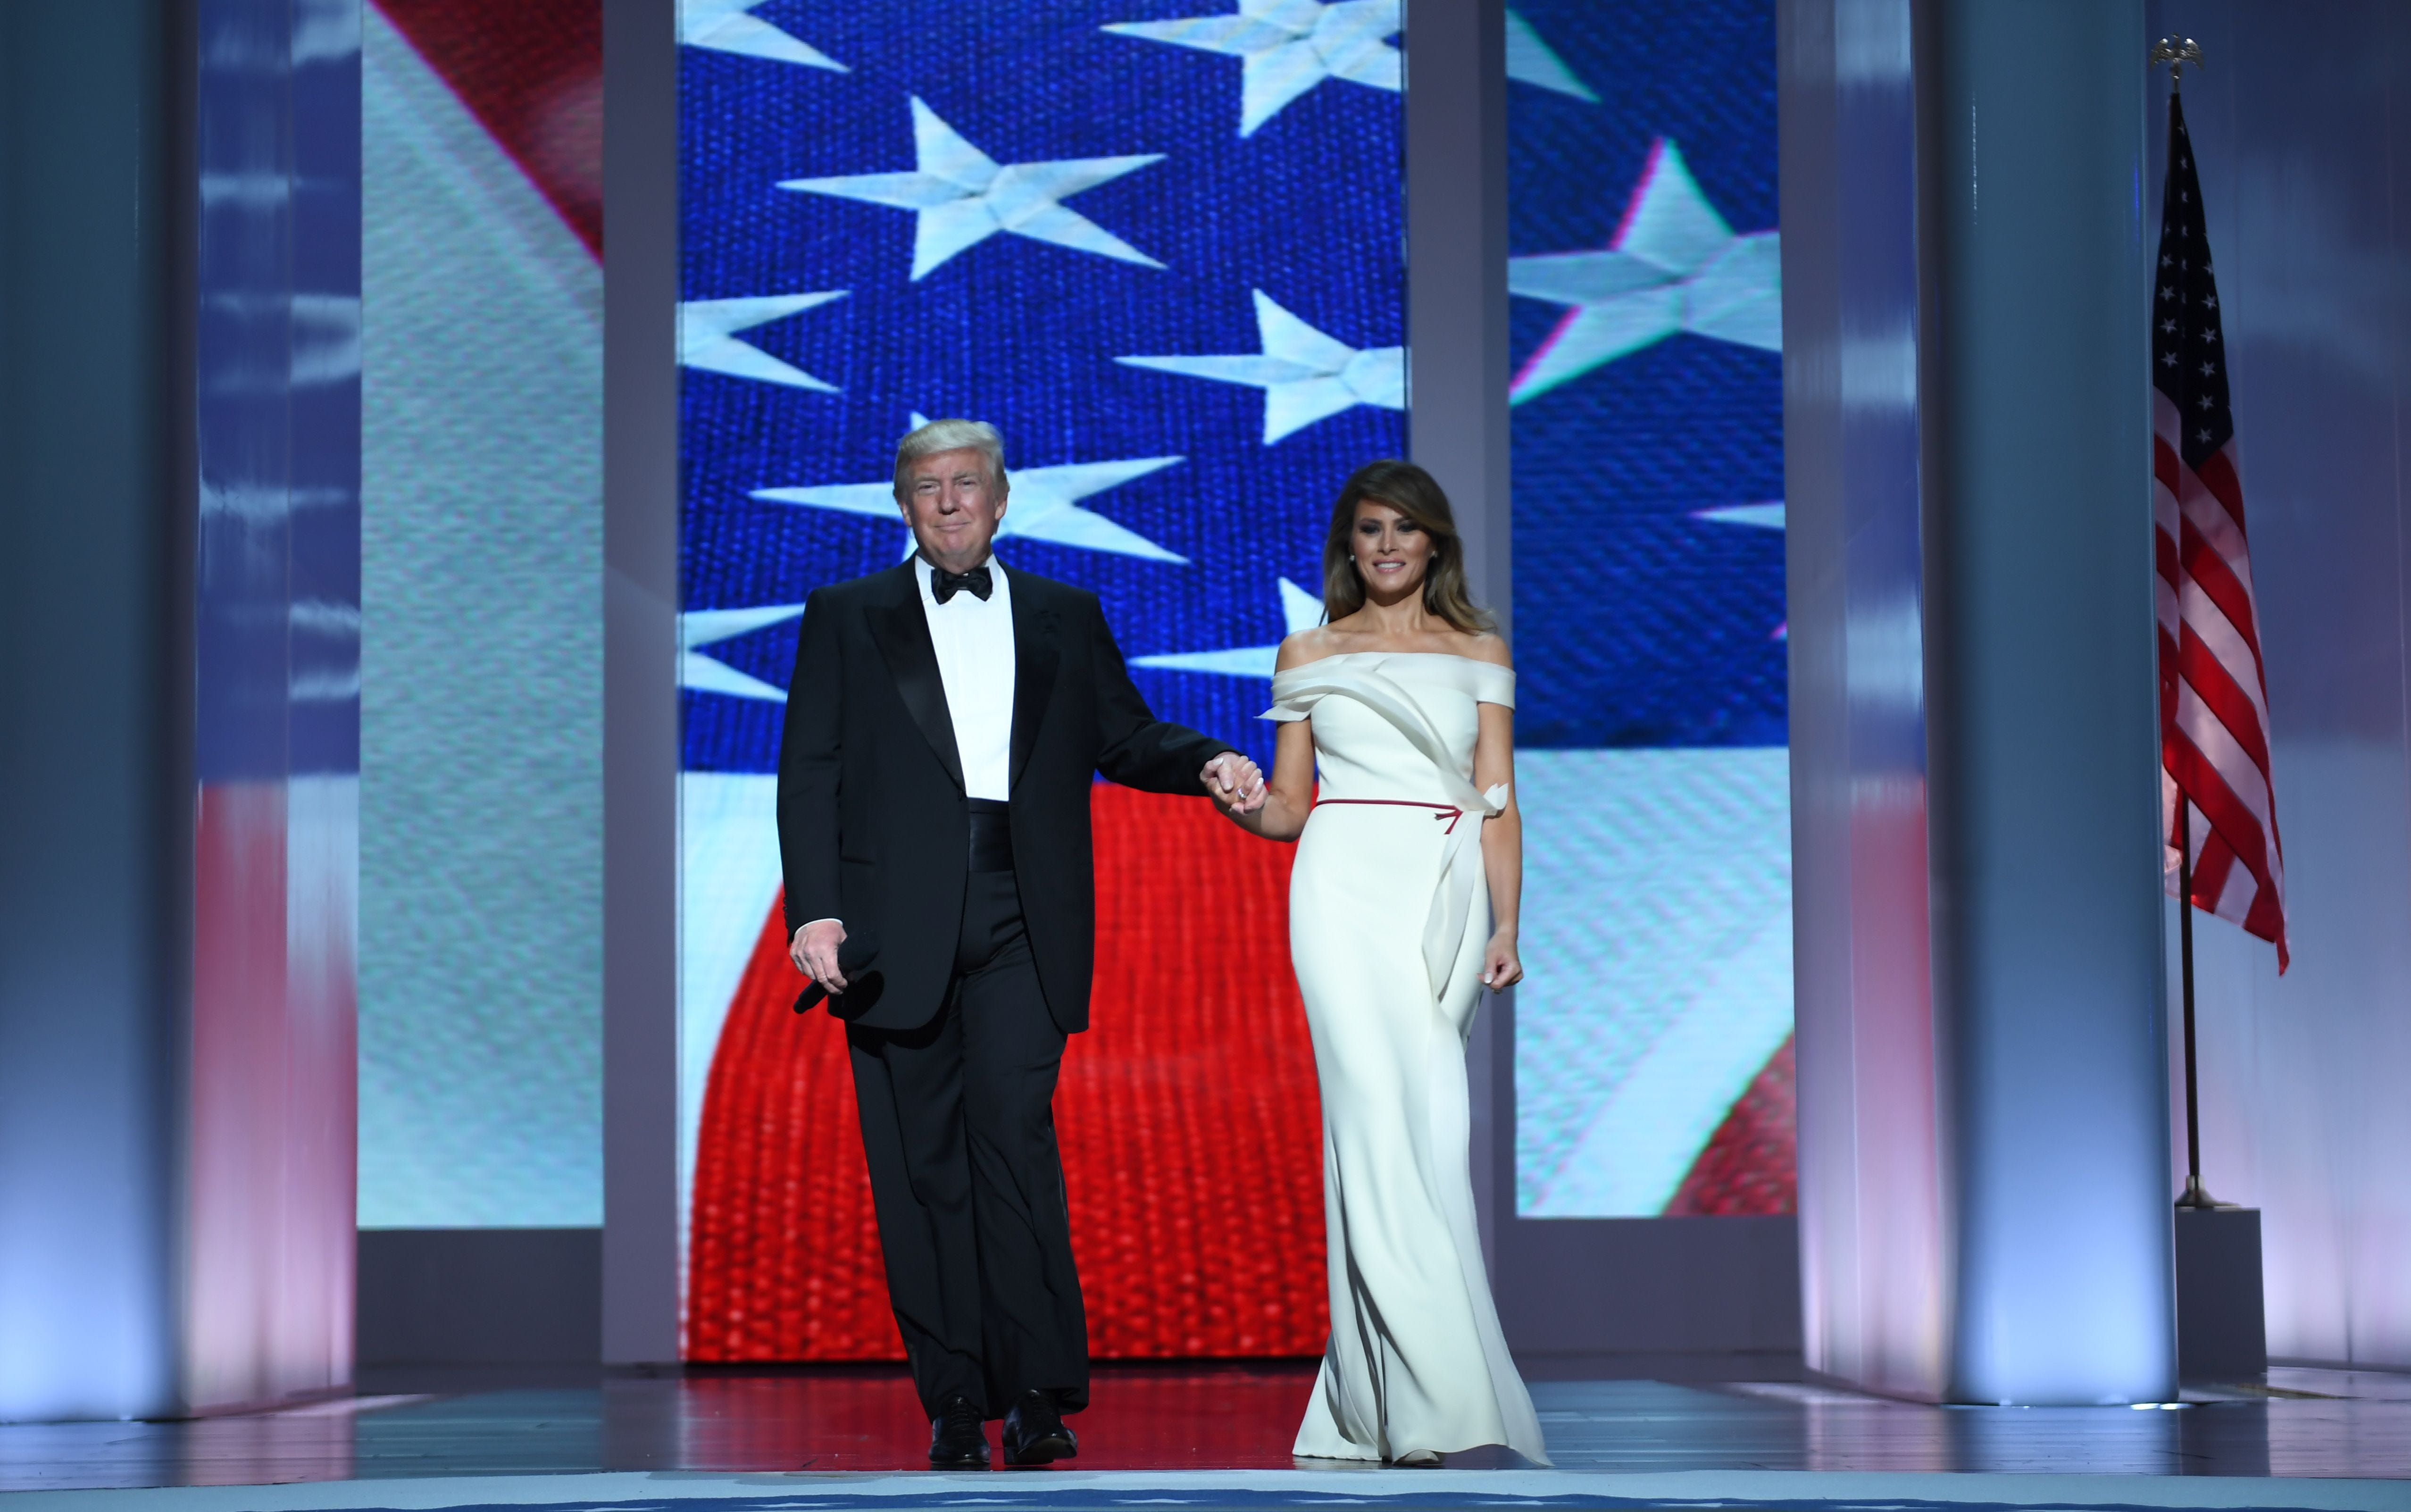 Melania Trump helped design her own inaugural gown